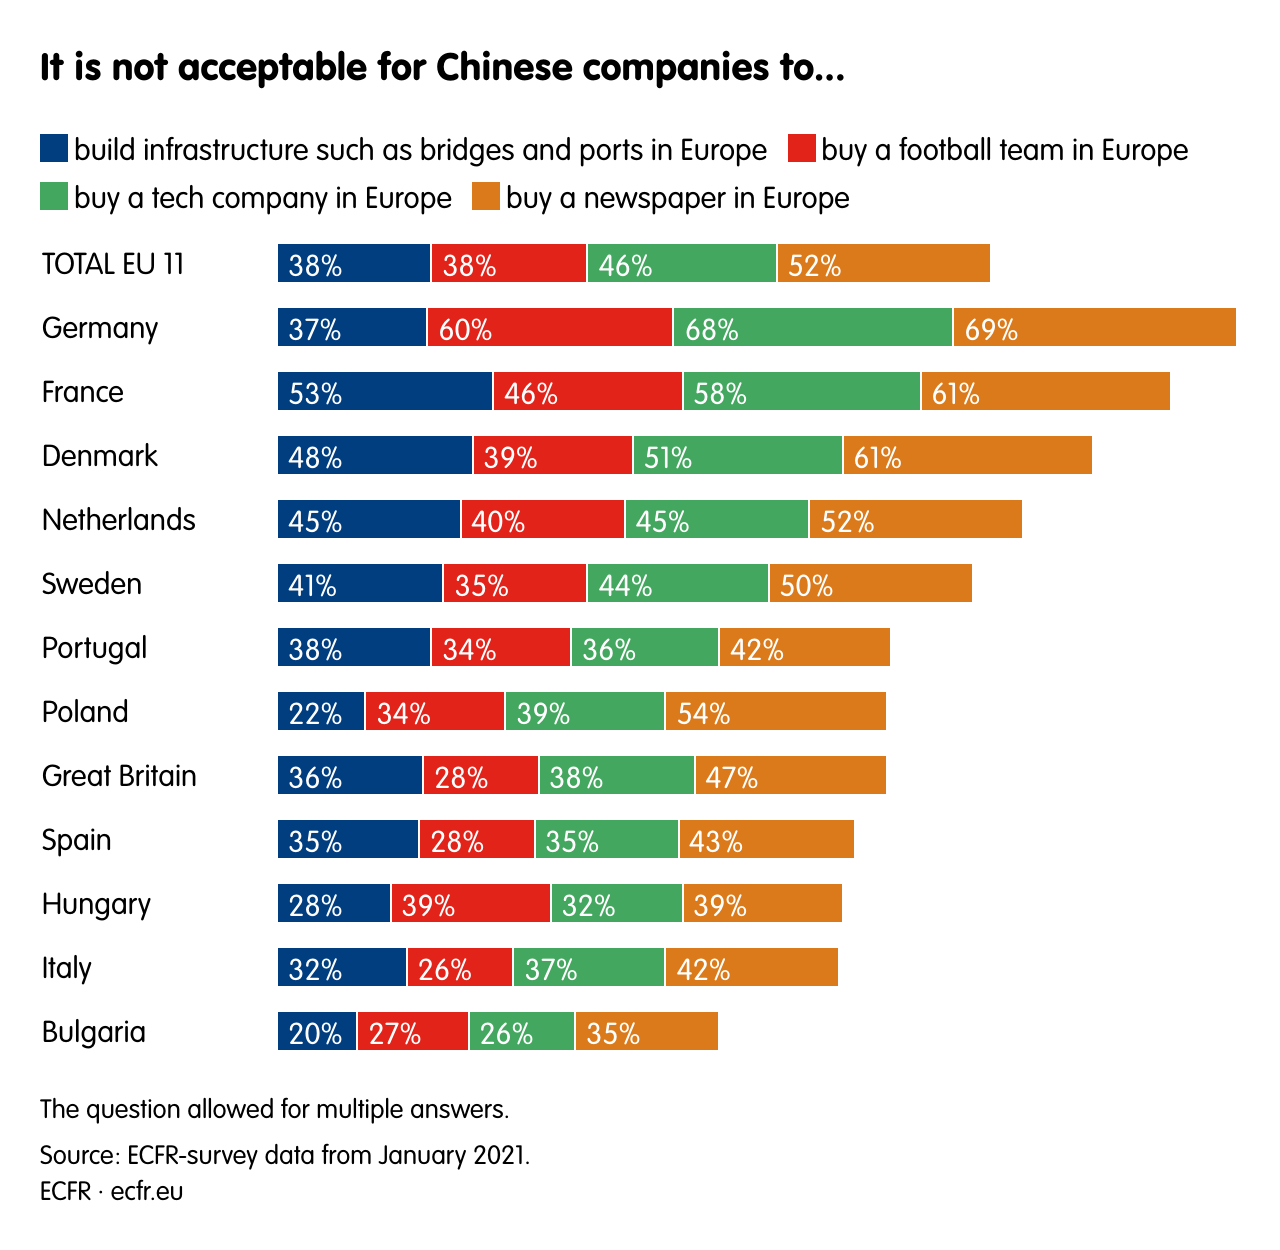 It is not acceptable for Chinese companies to...